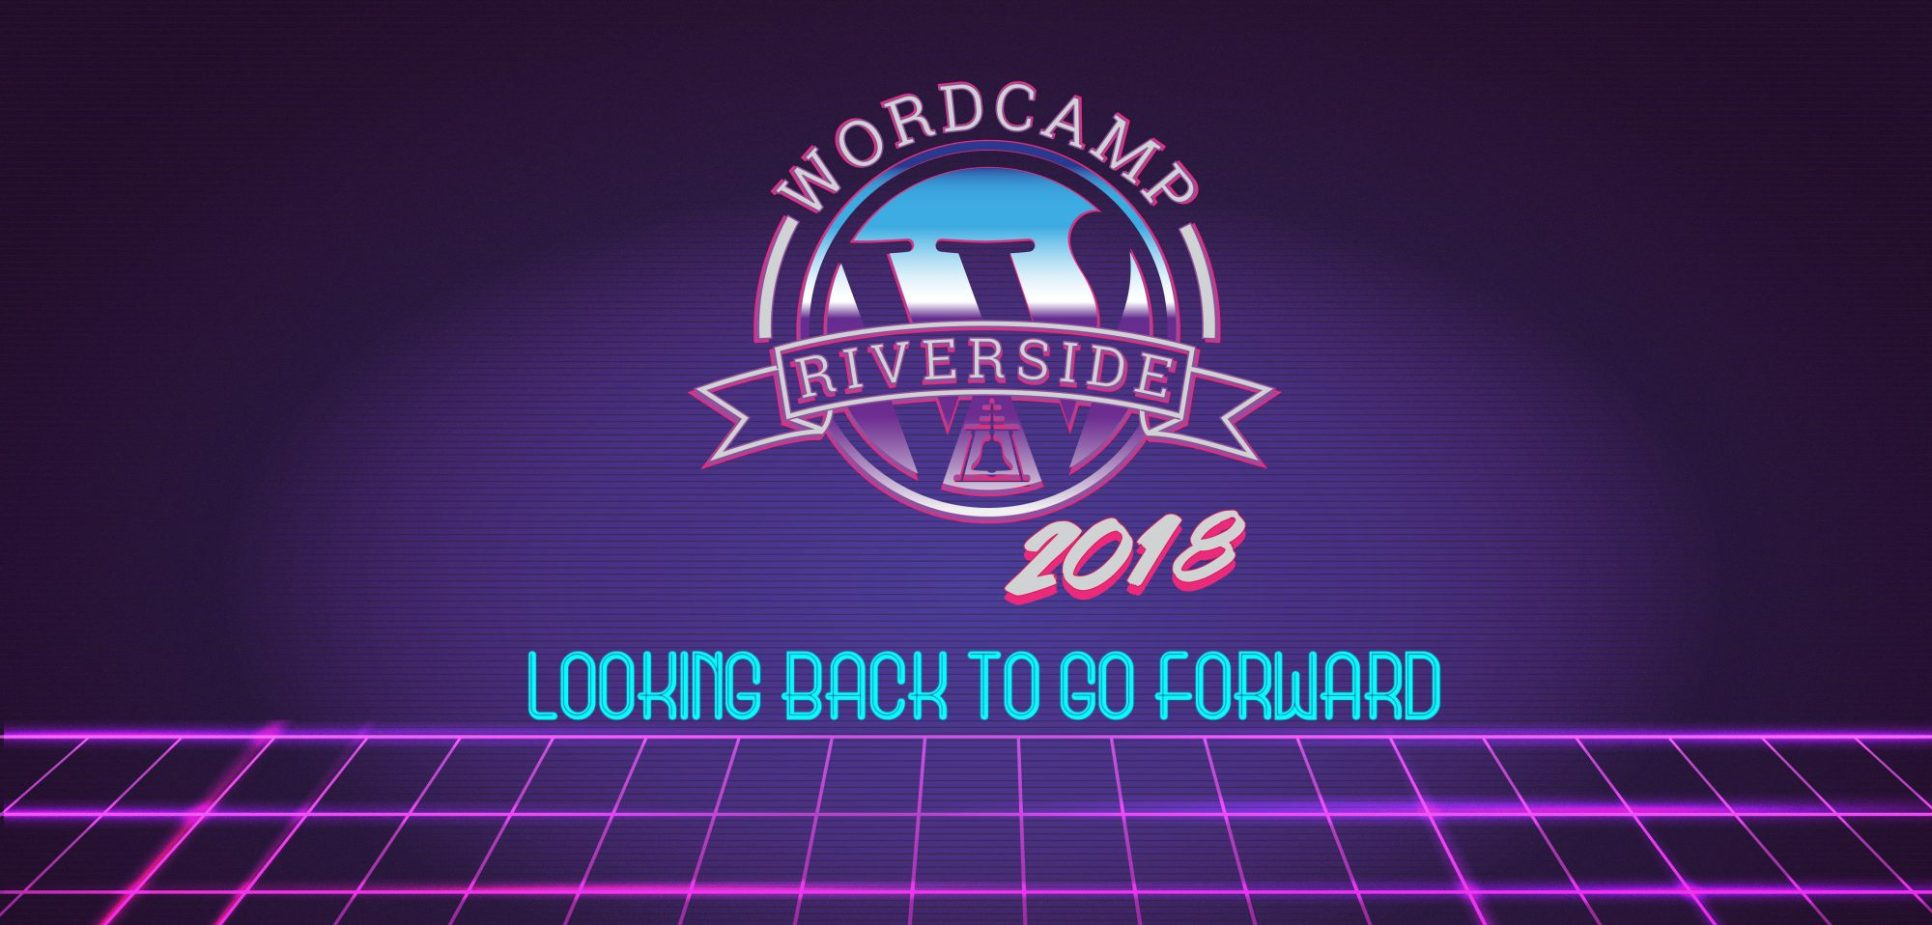 WordCamp Riverside 2018: Looking Back to Go Forward logo